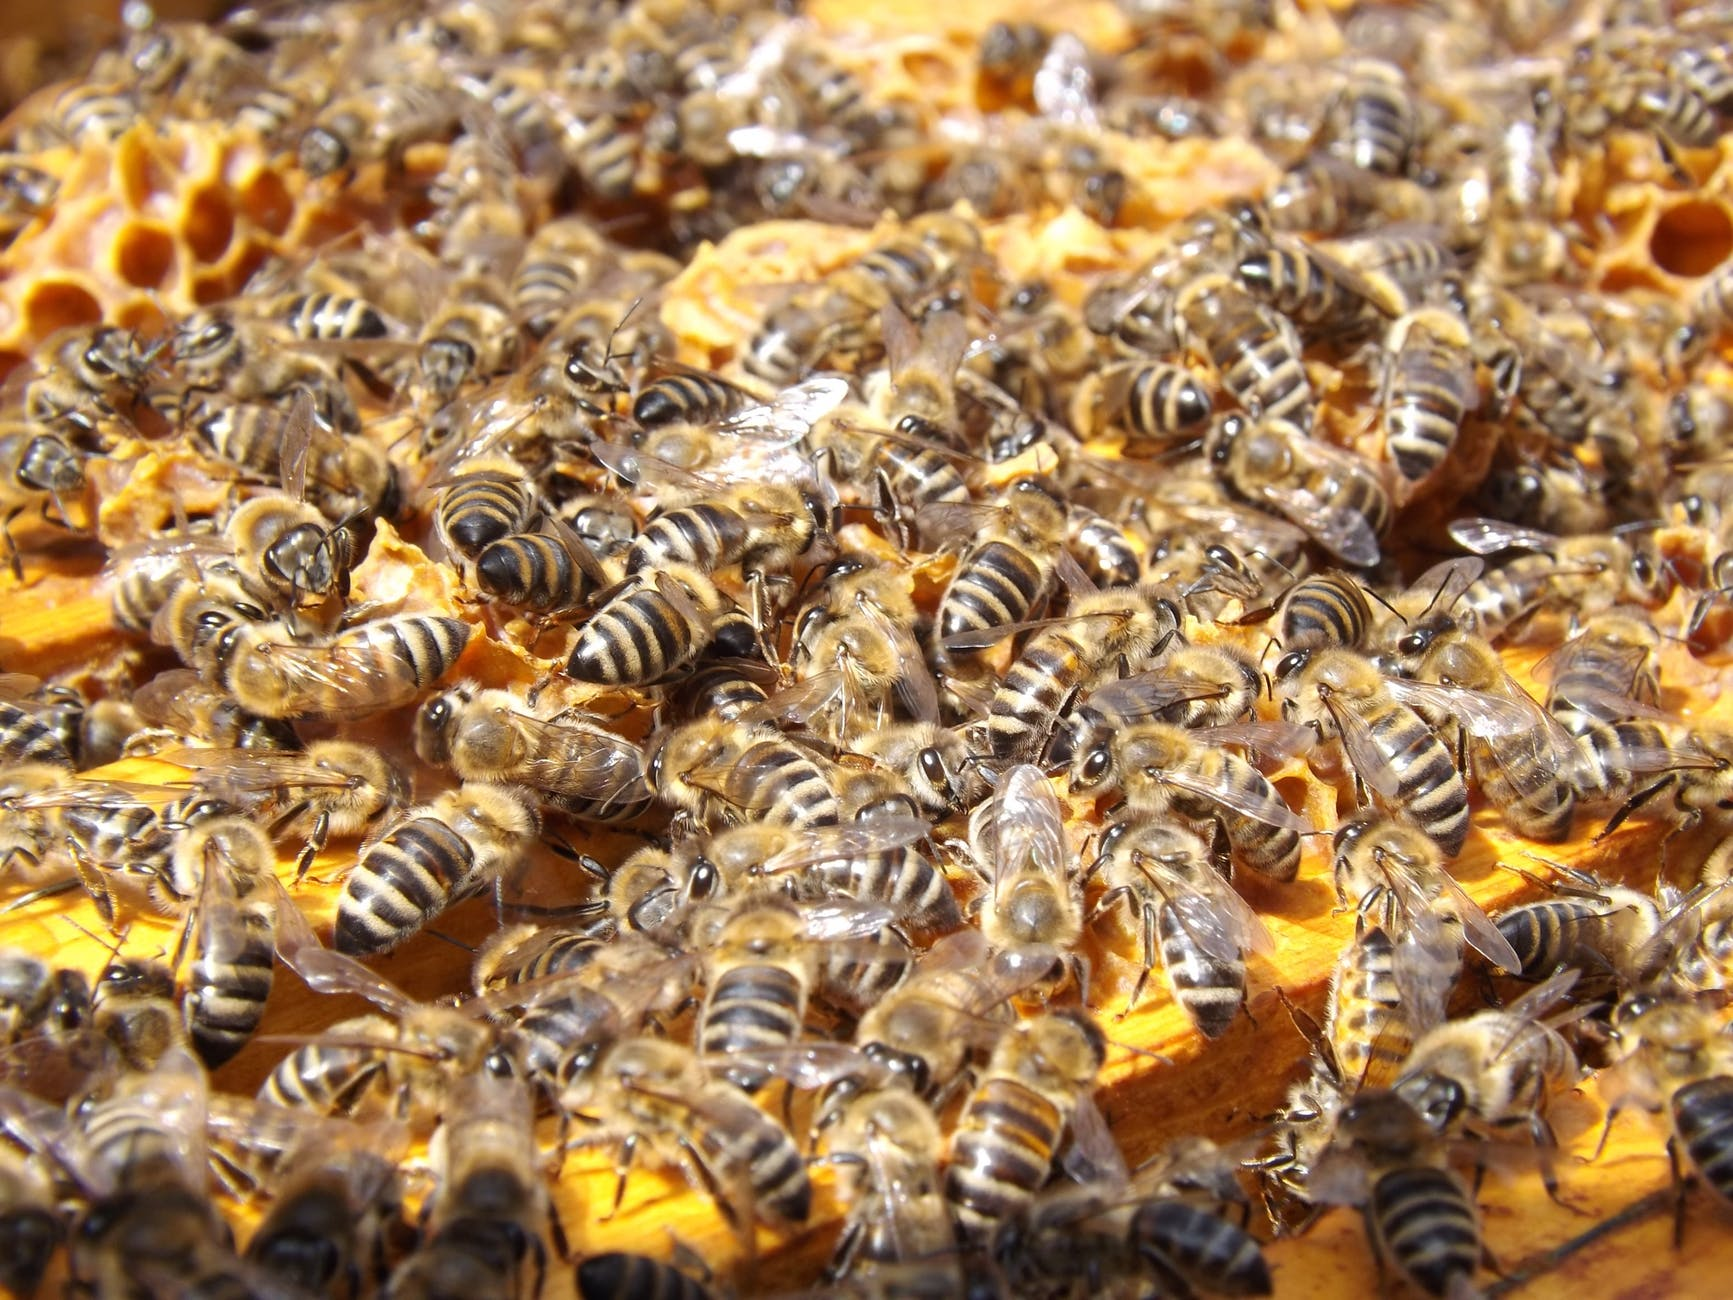 swarm insects bees honey